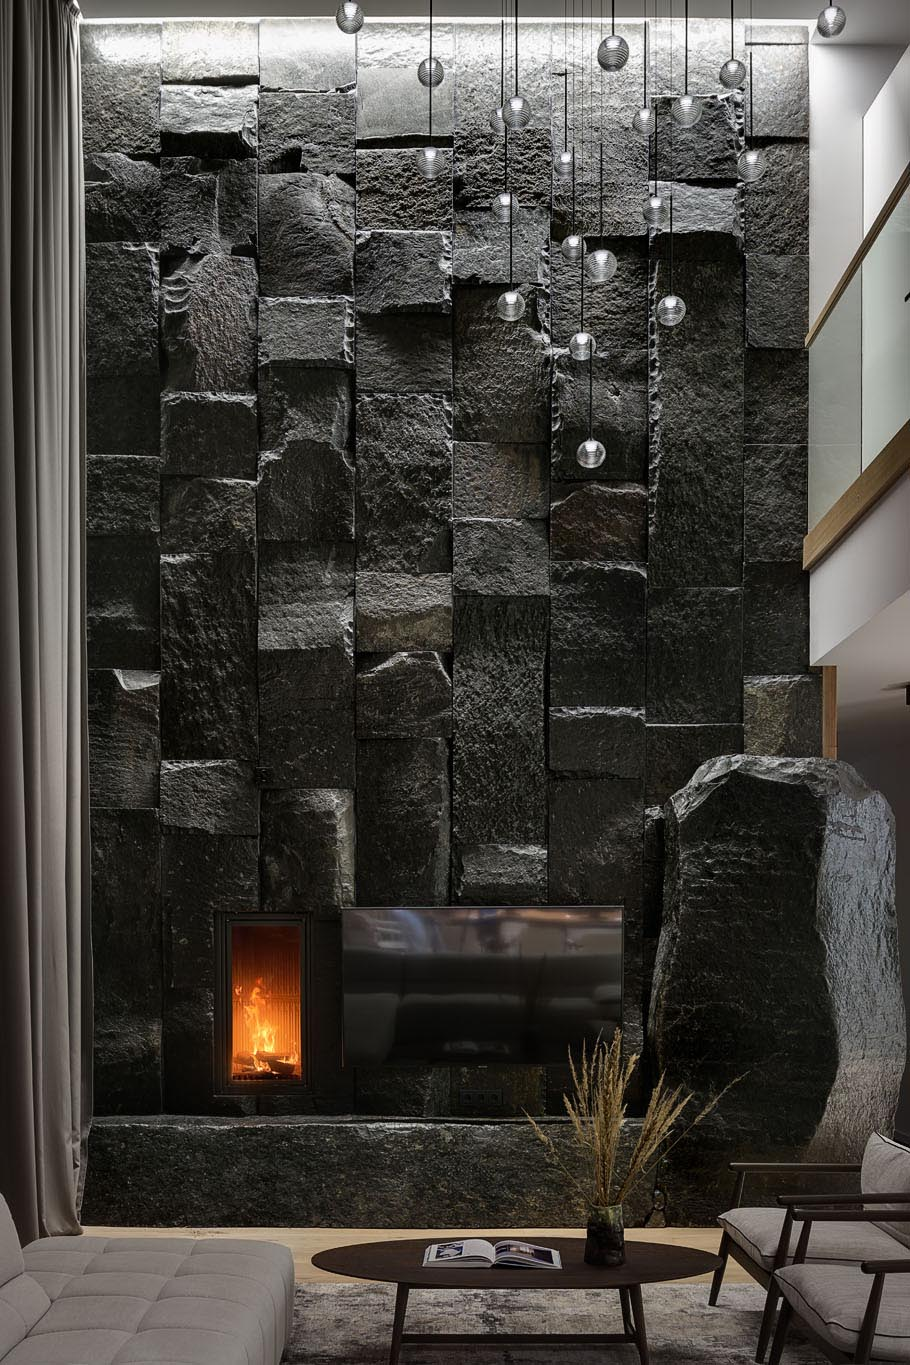 A large, dark, and monumental natural stone boulder wall that's used as a backdrop for the fireplace and television.